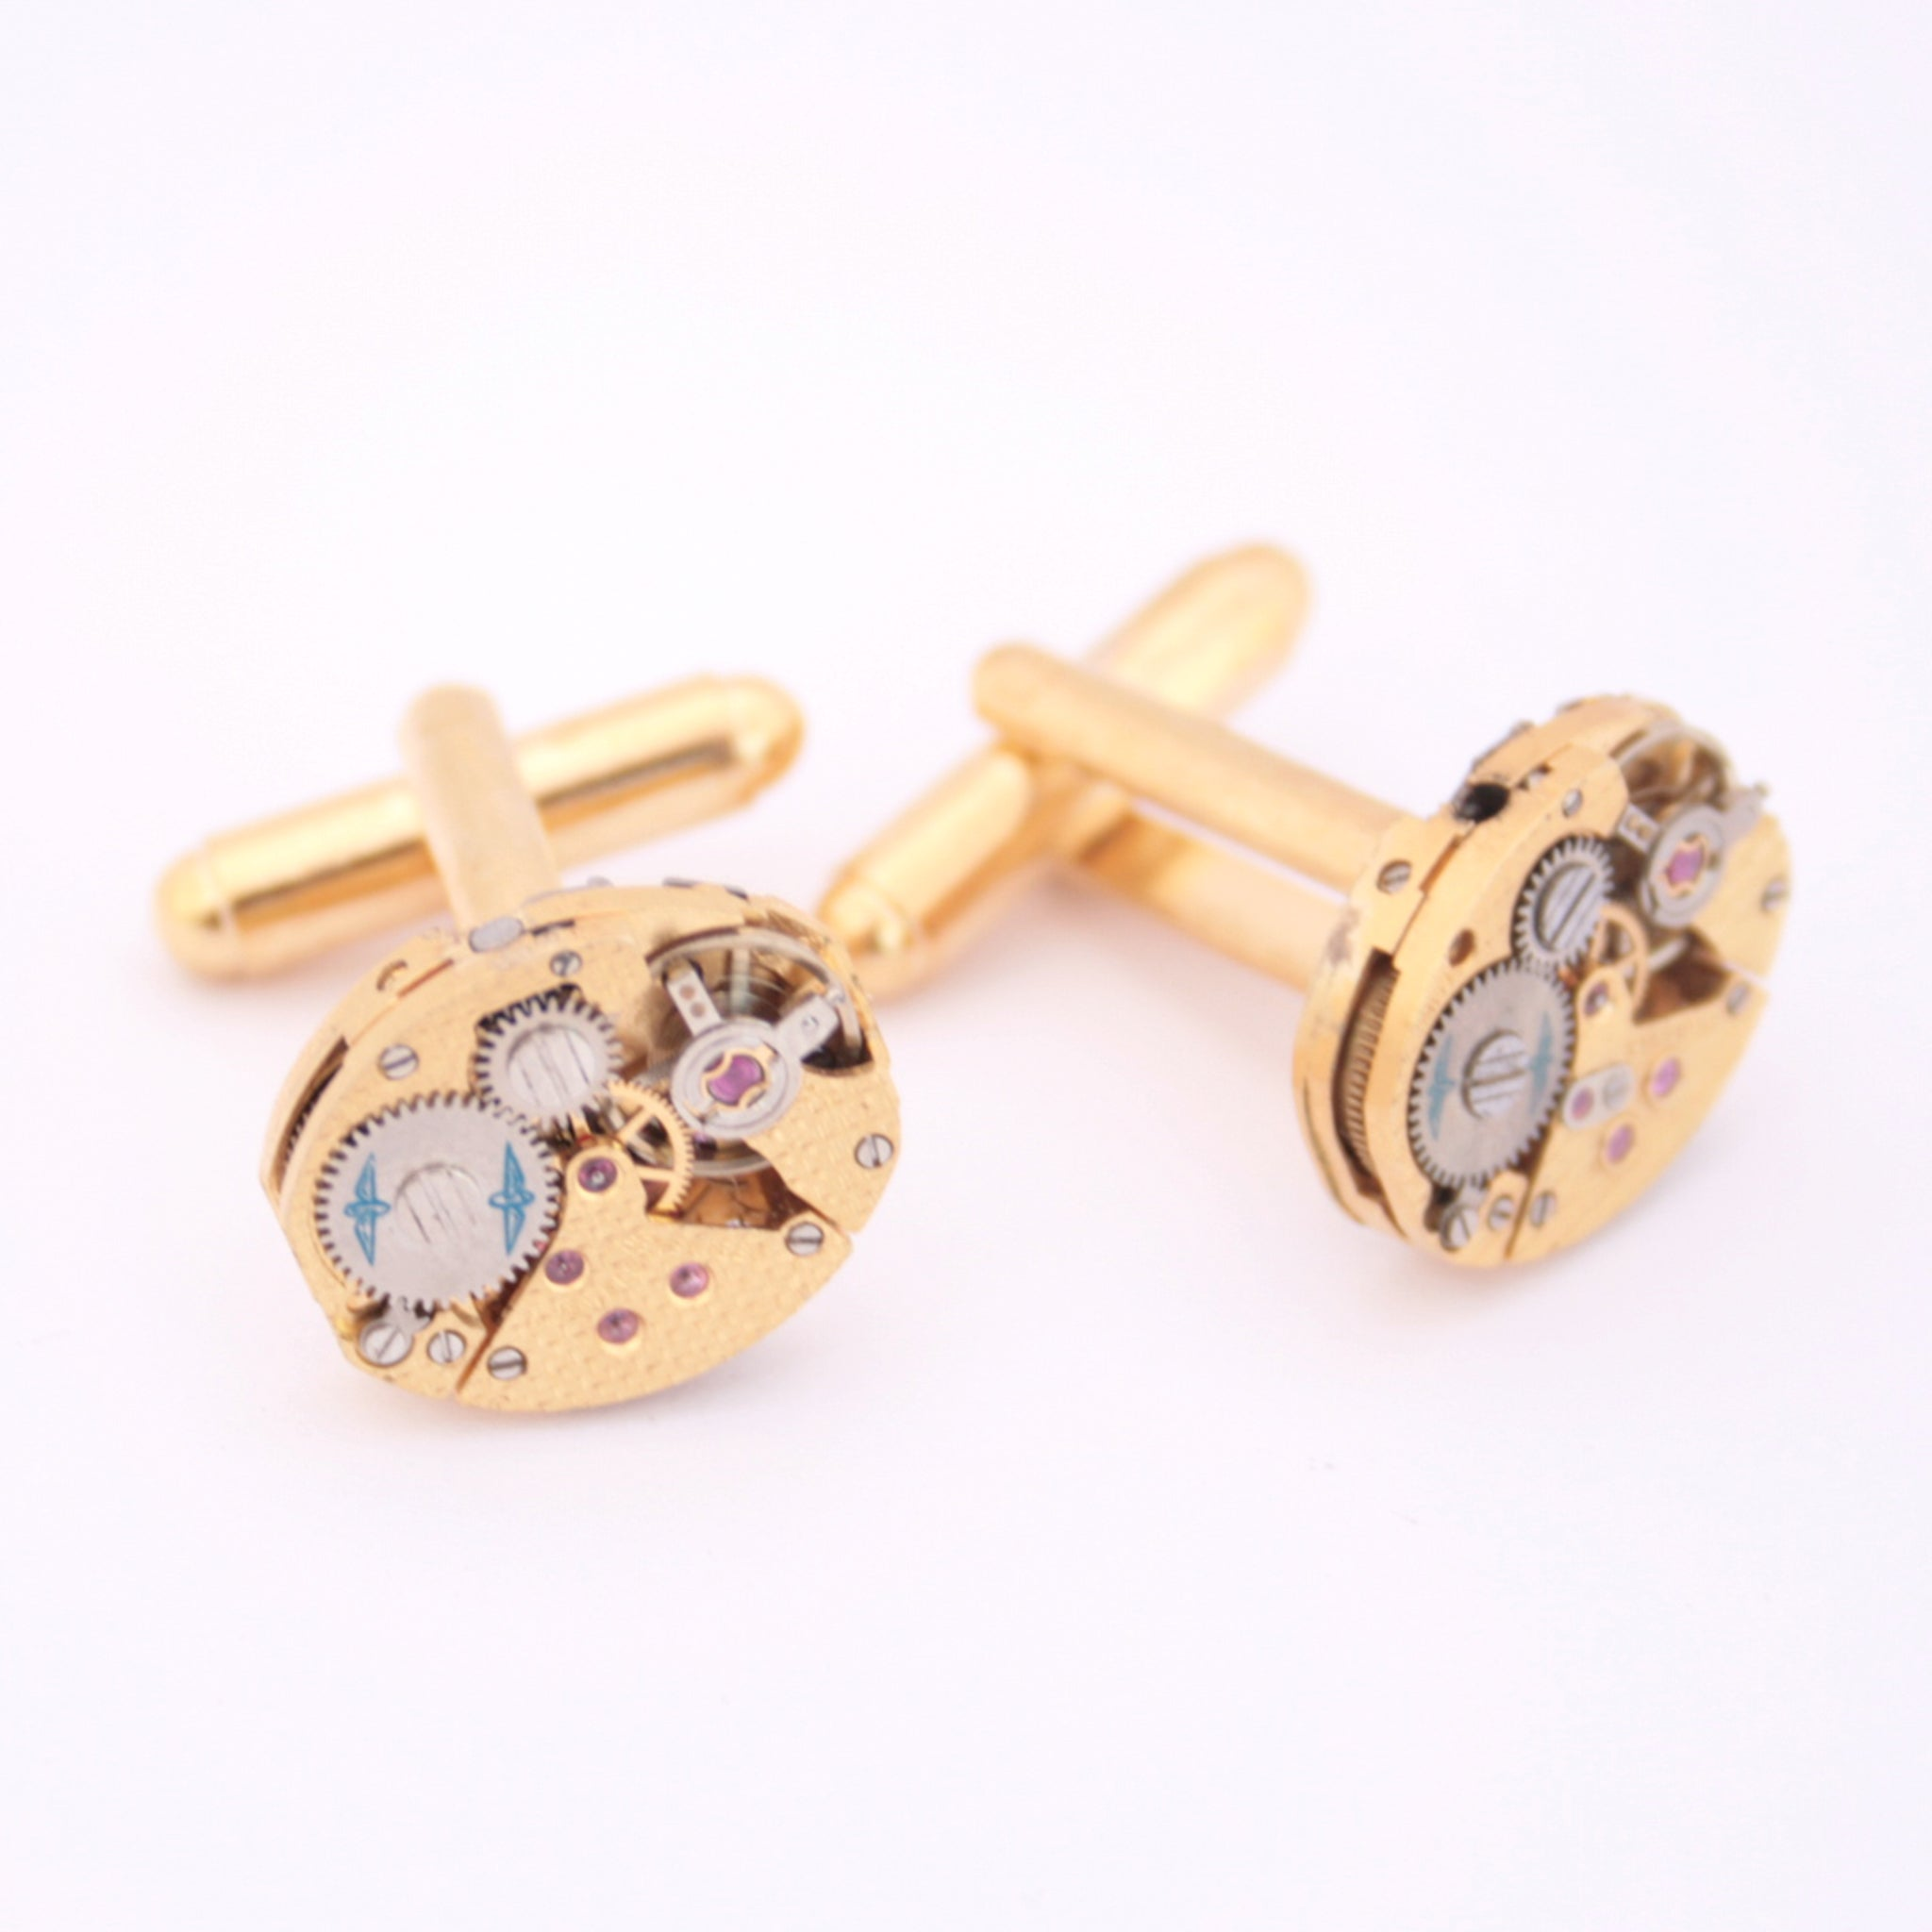 Gold Rotary Watch Cufflinks made of clockworks